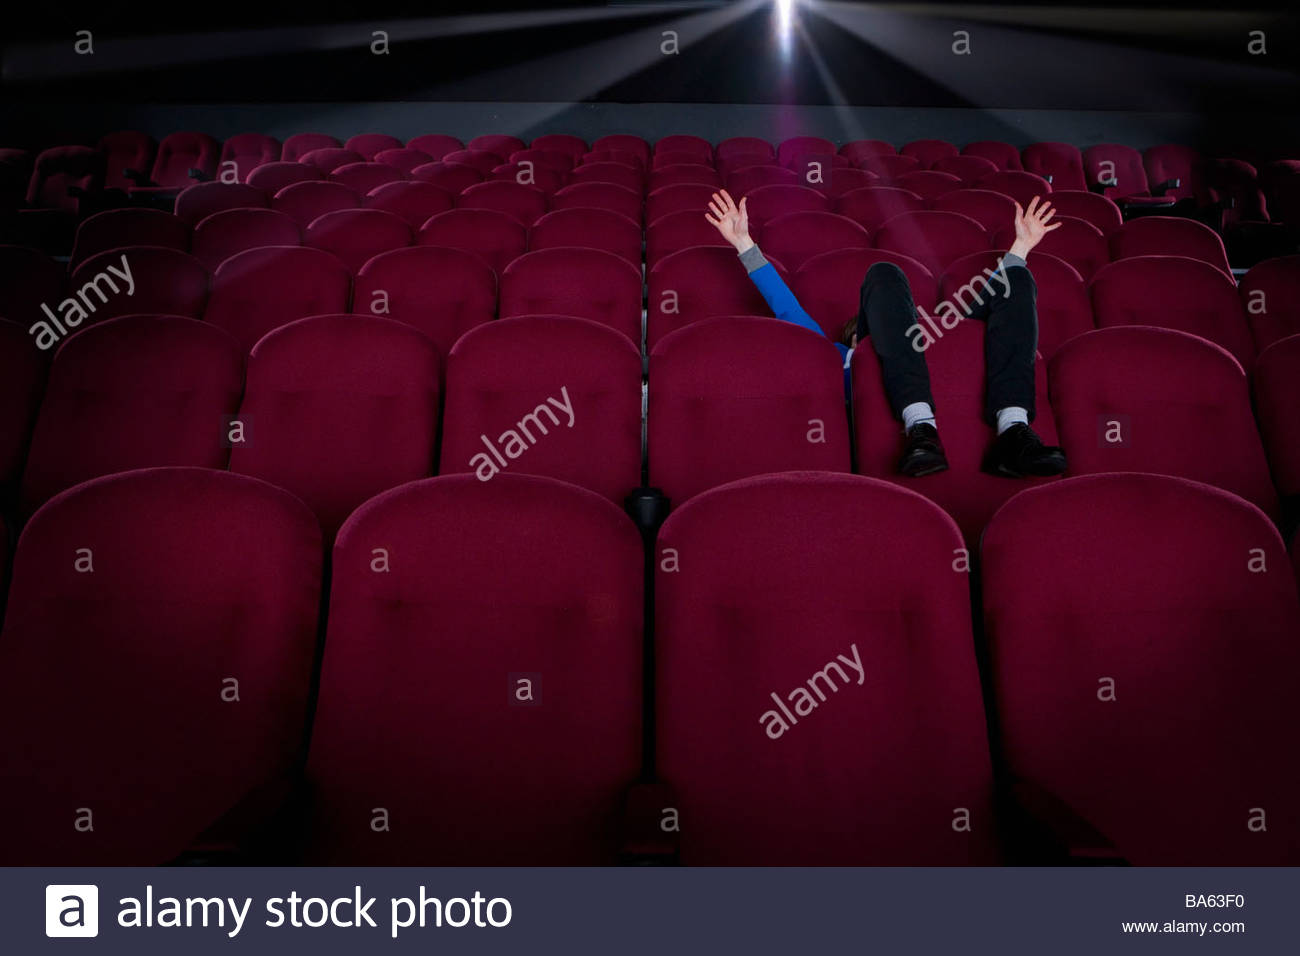 Man in empty cinema, face obscured, arms raised - Stock Image